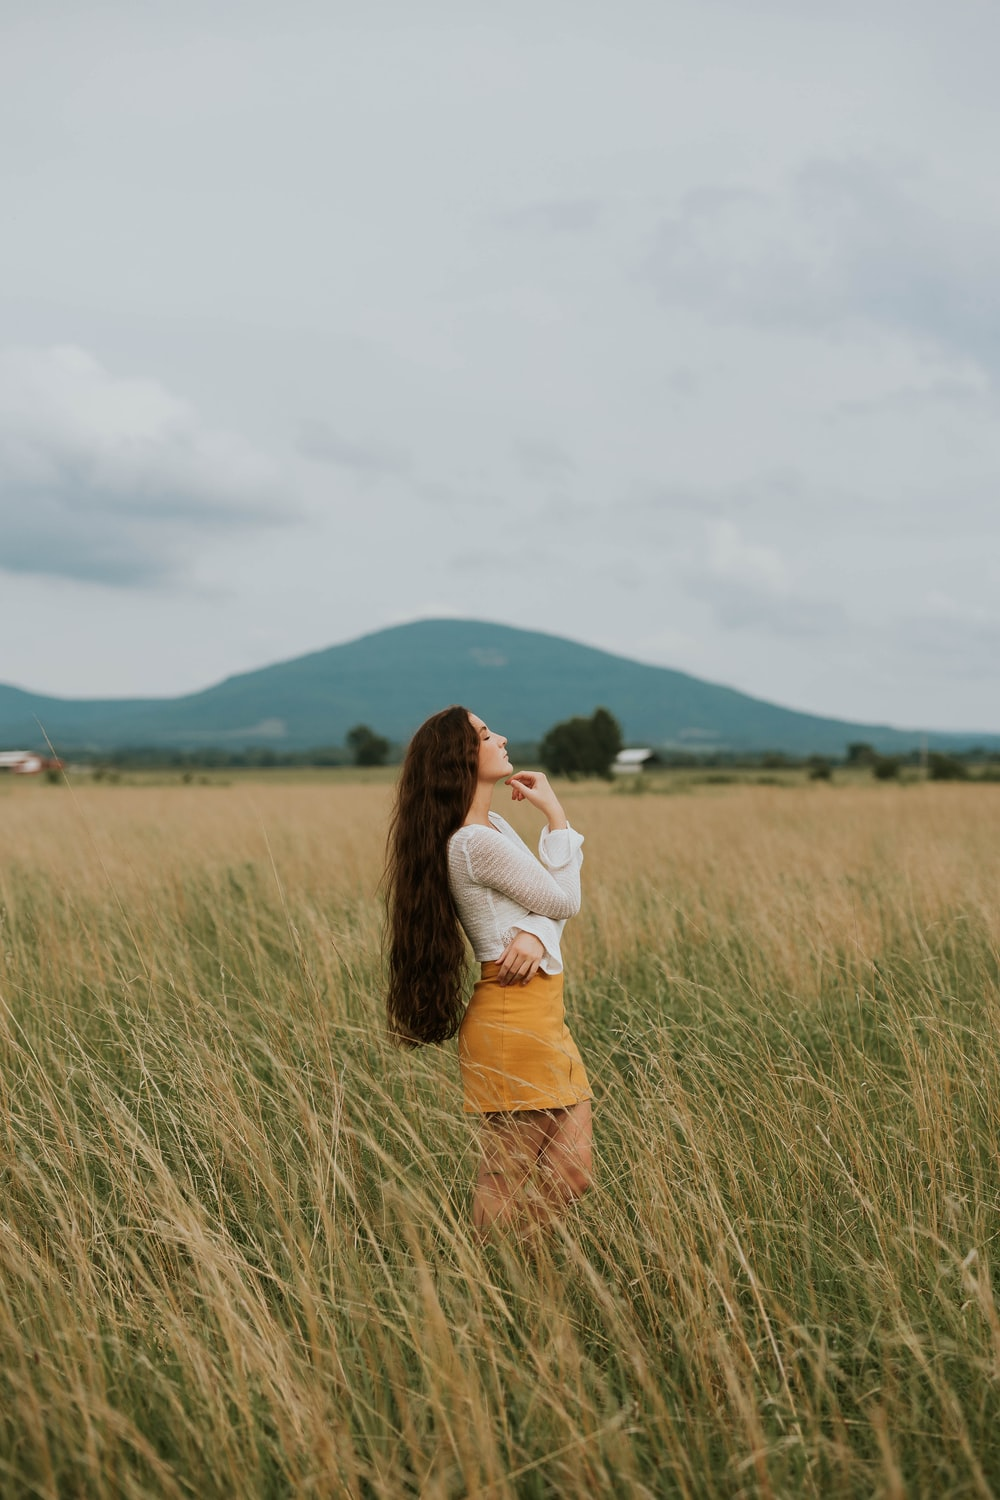 woman standing in the middle of grass field